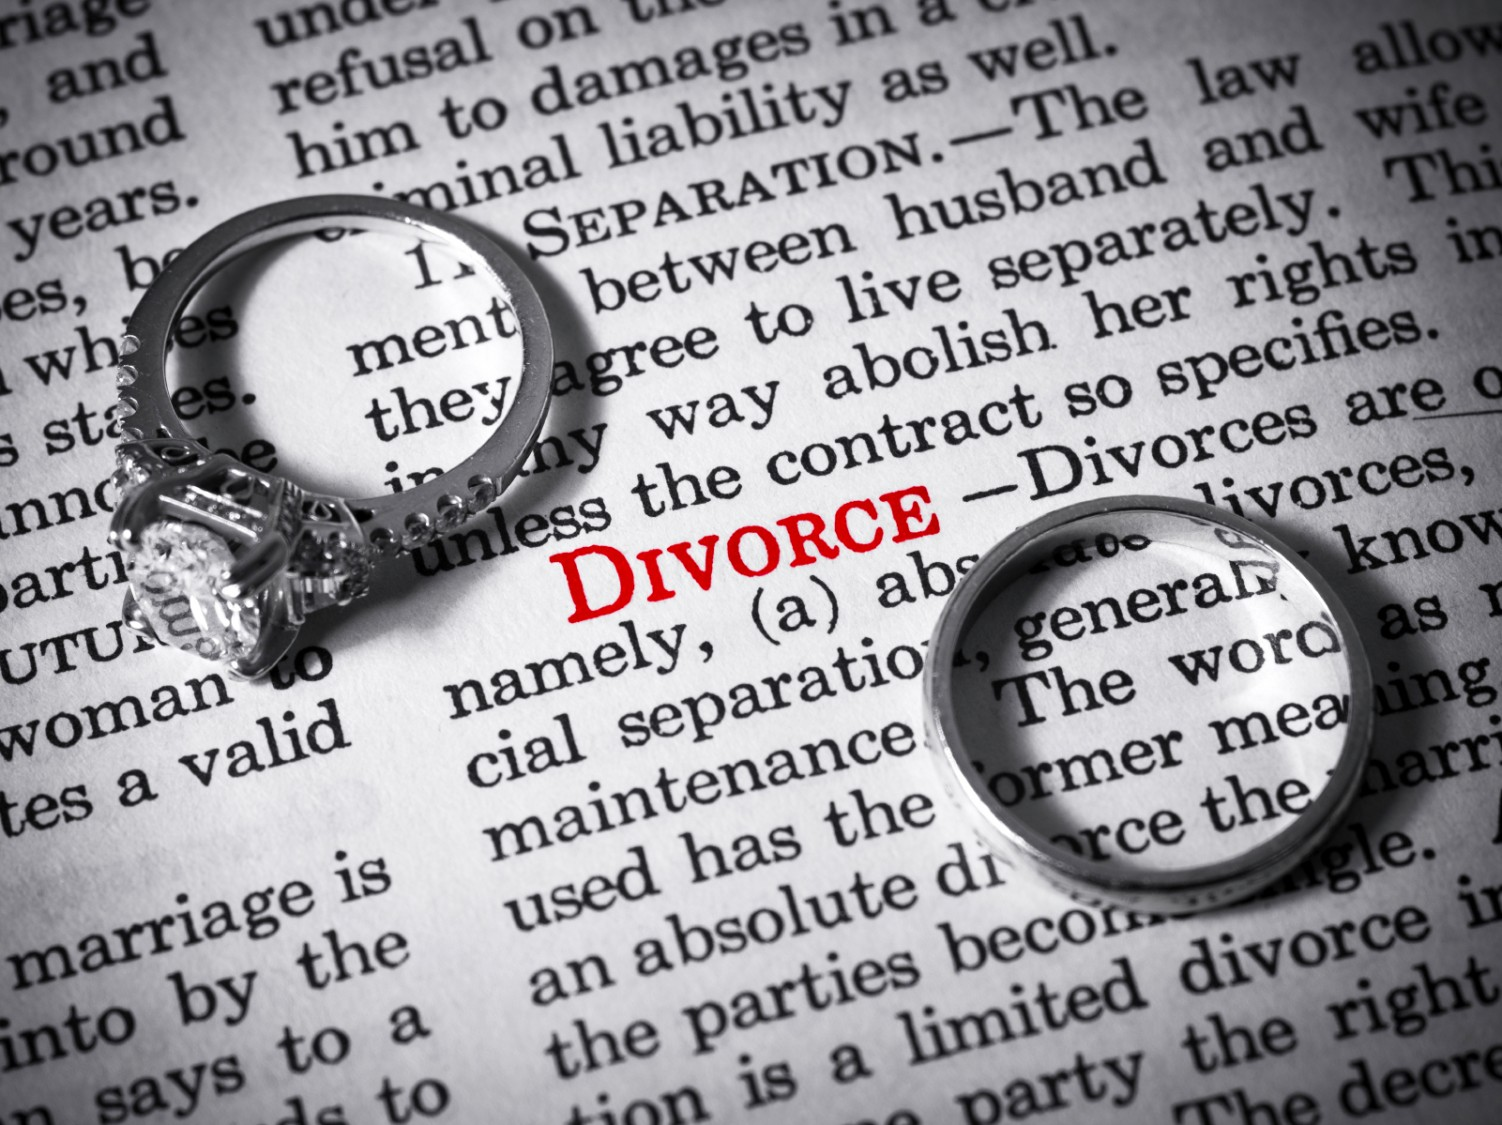 General information about divorce ils solutioingenieria Choice Image